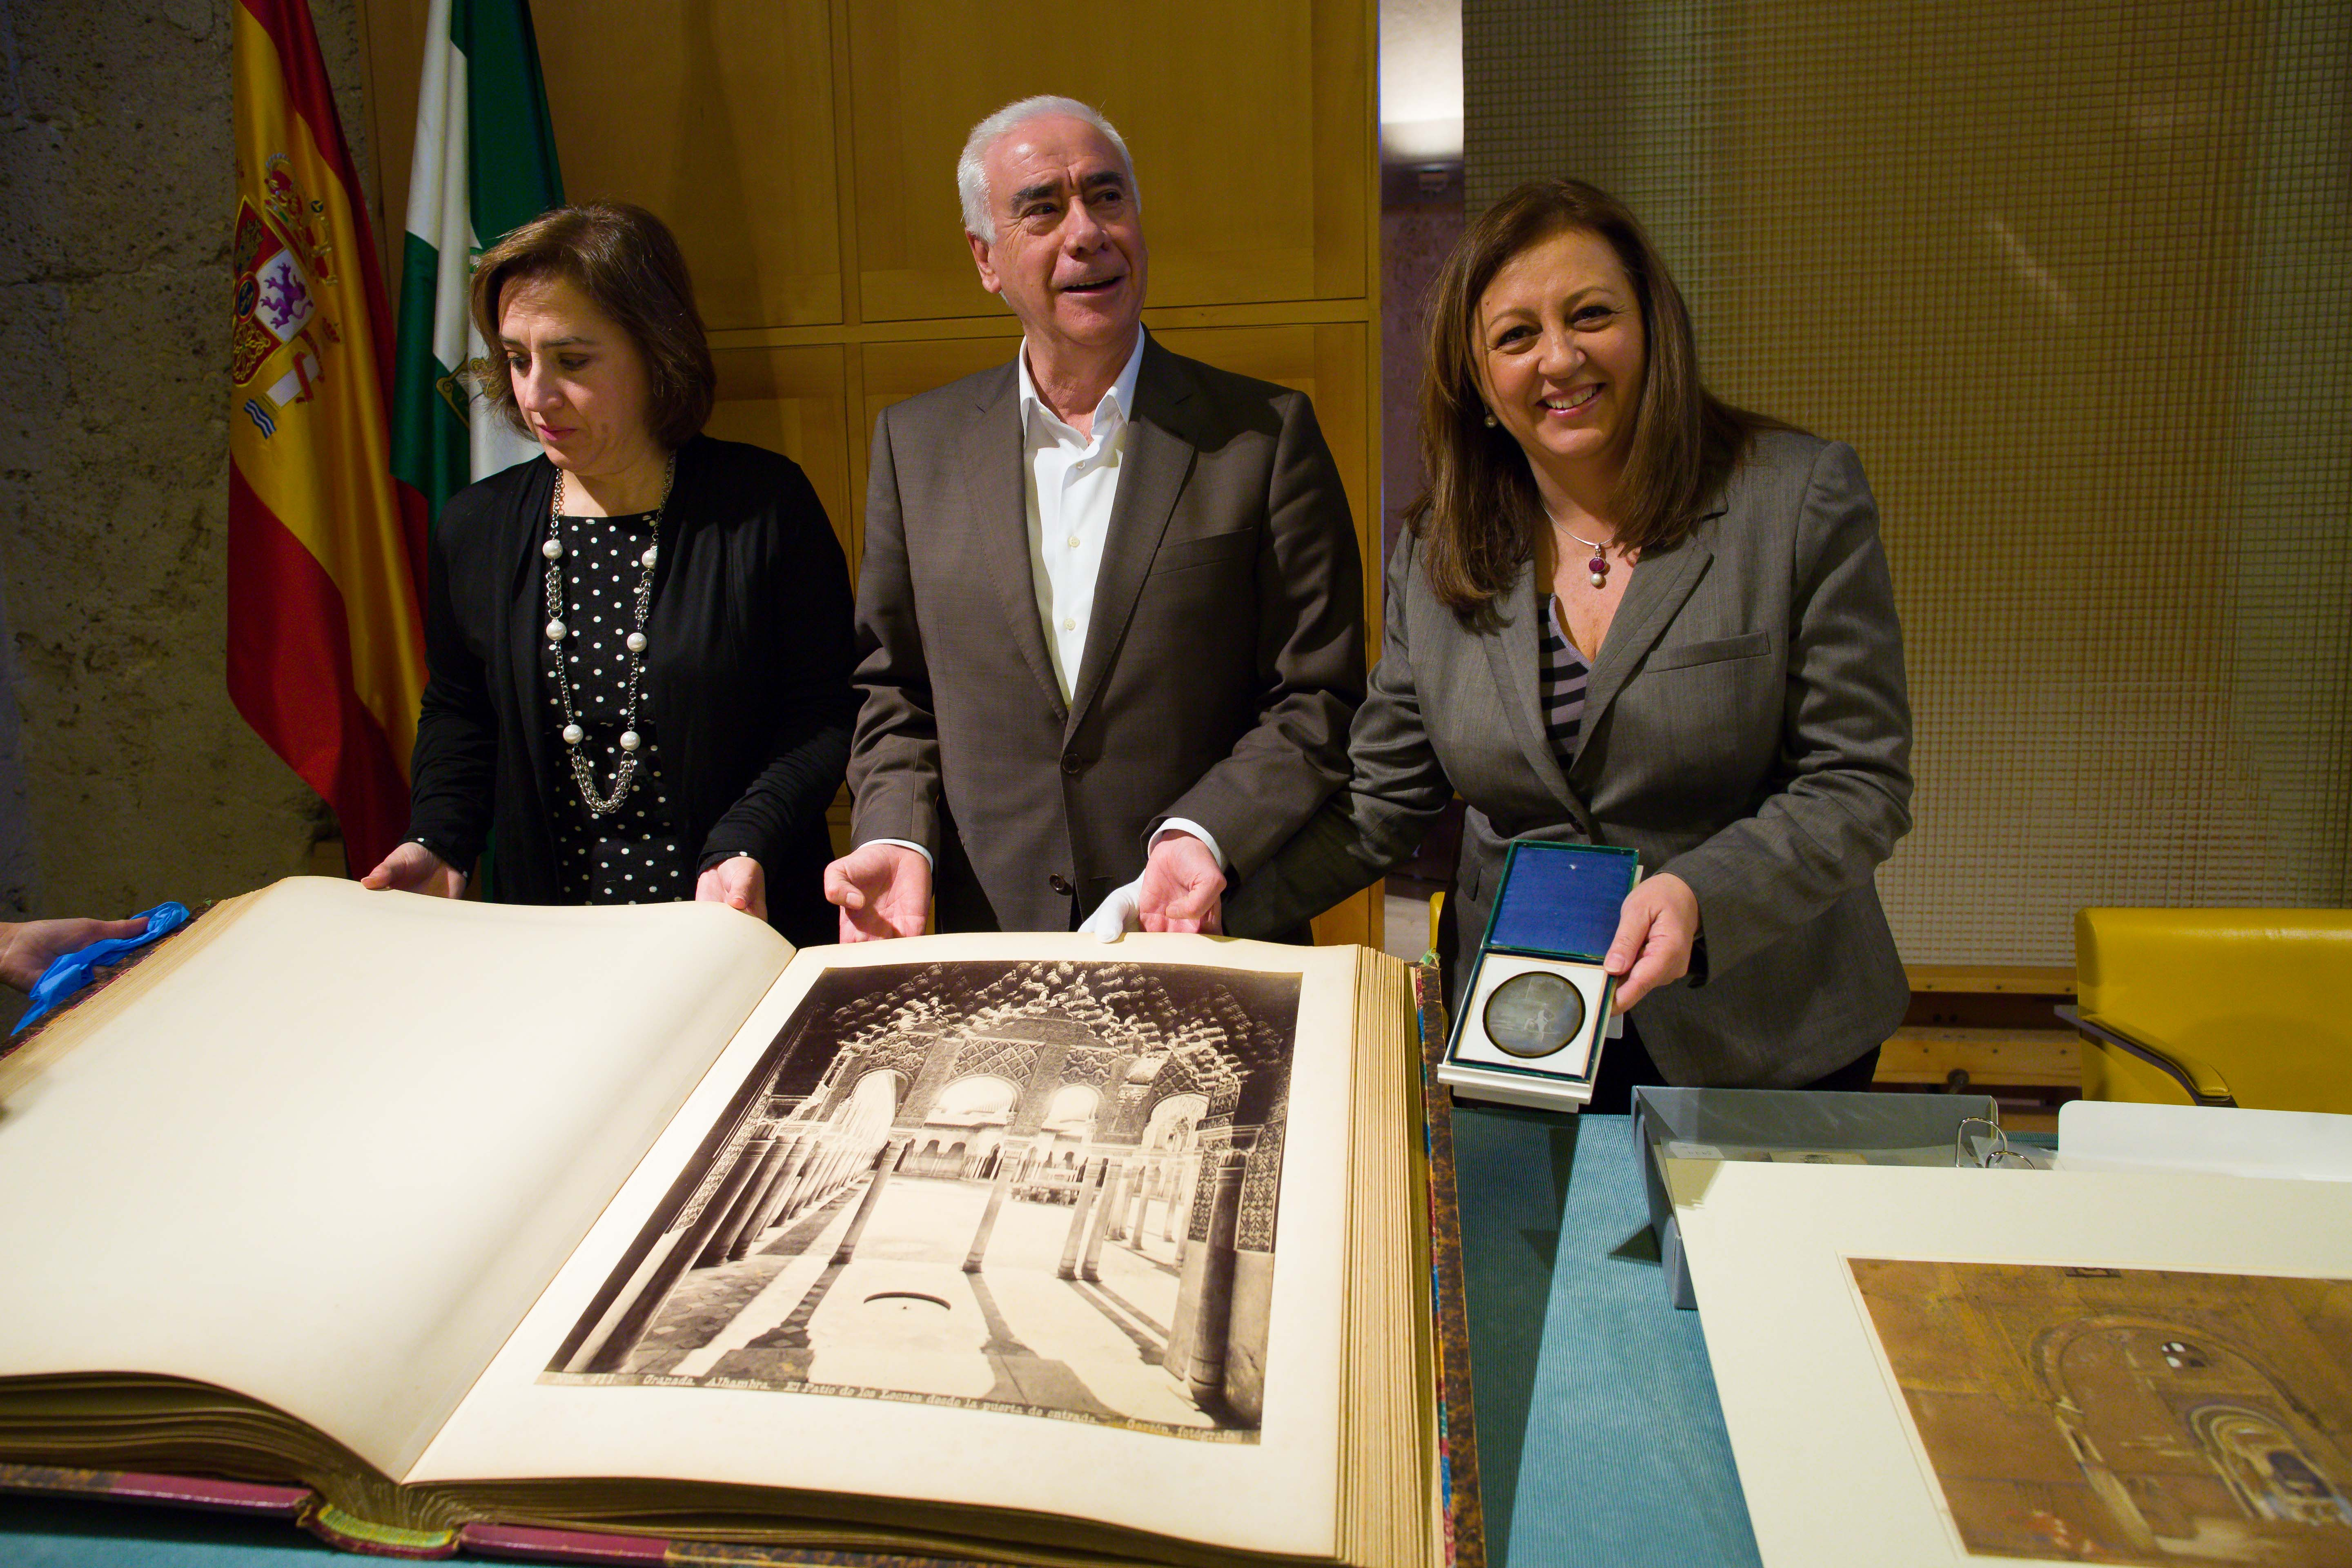 The Alhambra has enhanced its art collection with around twenty pieces valued at 250,300 euros